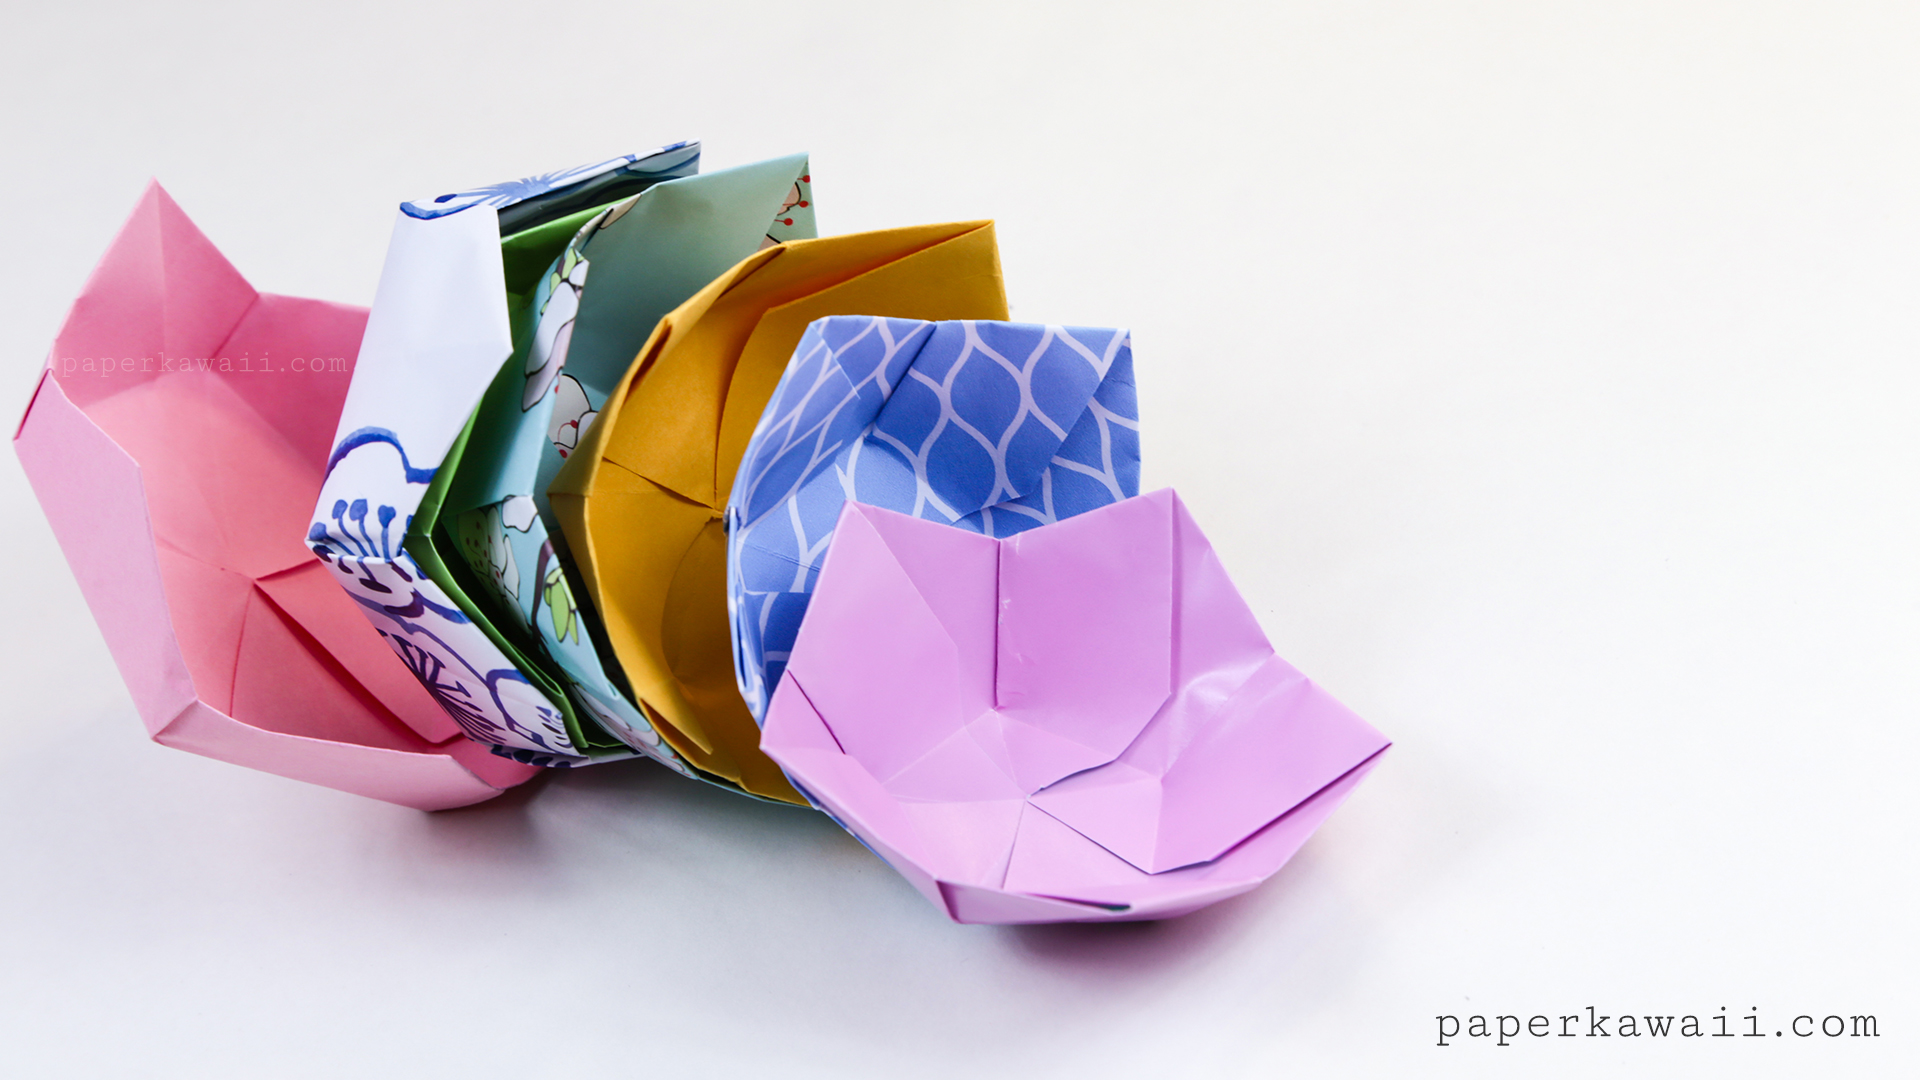 Origami Flower Bowl Tutorial - Paper Kawaii - photo#50